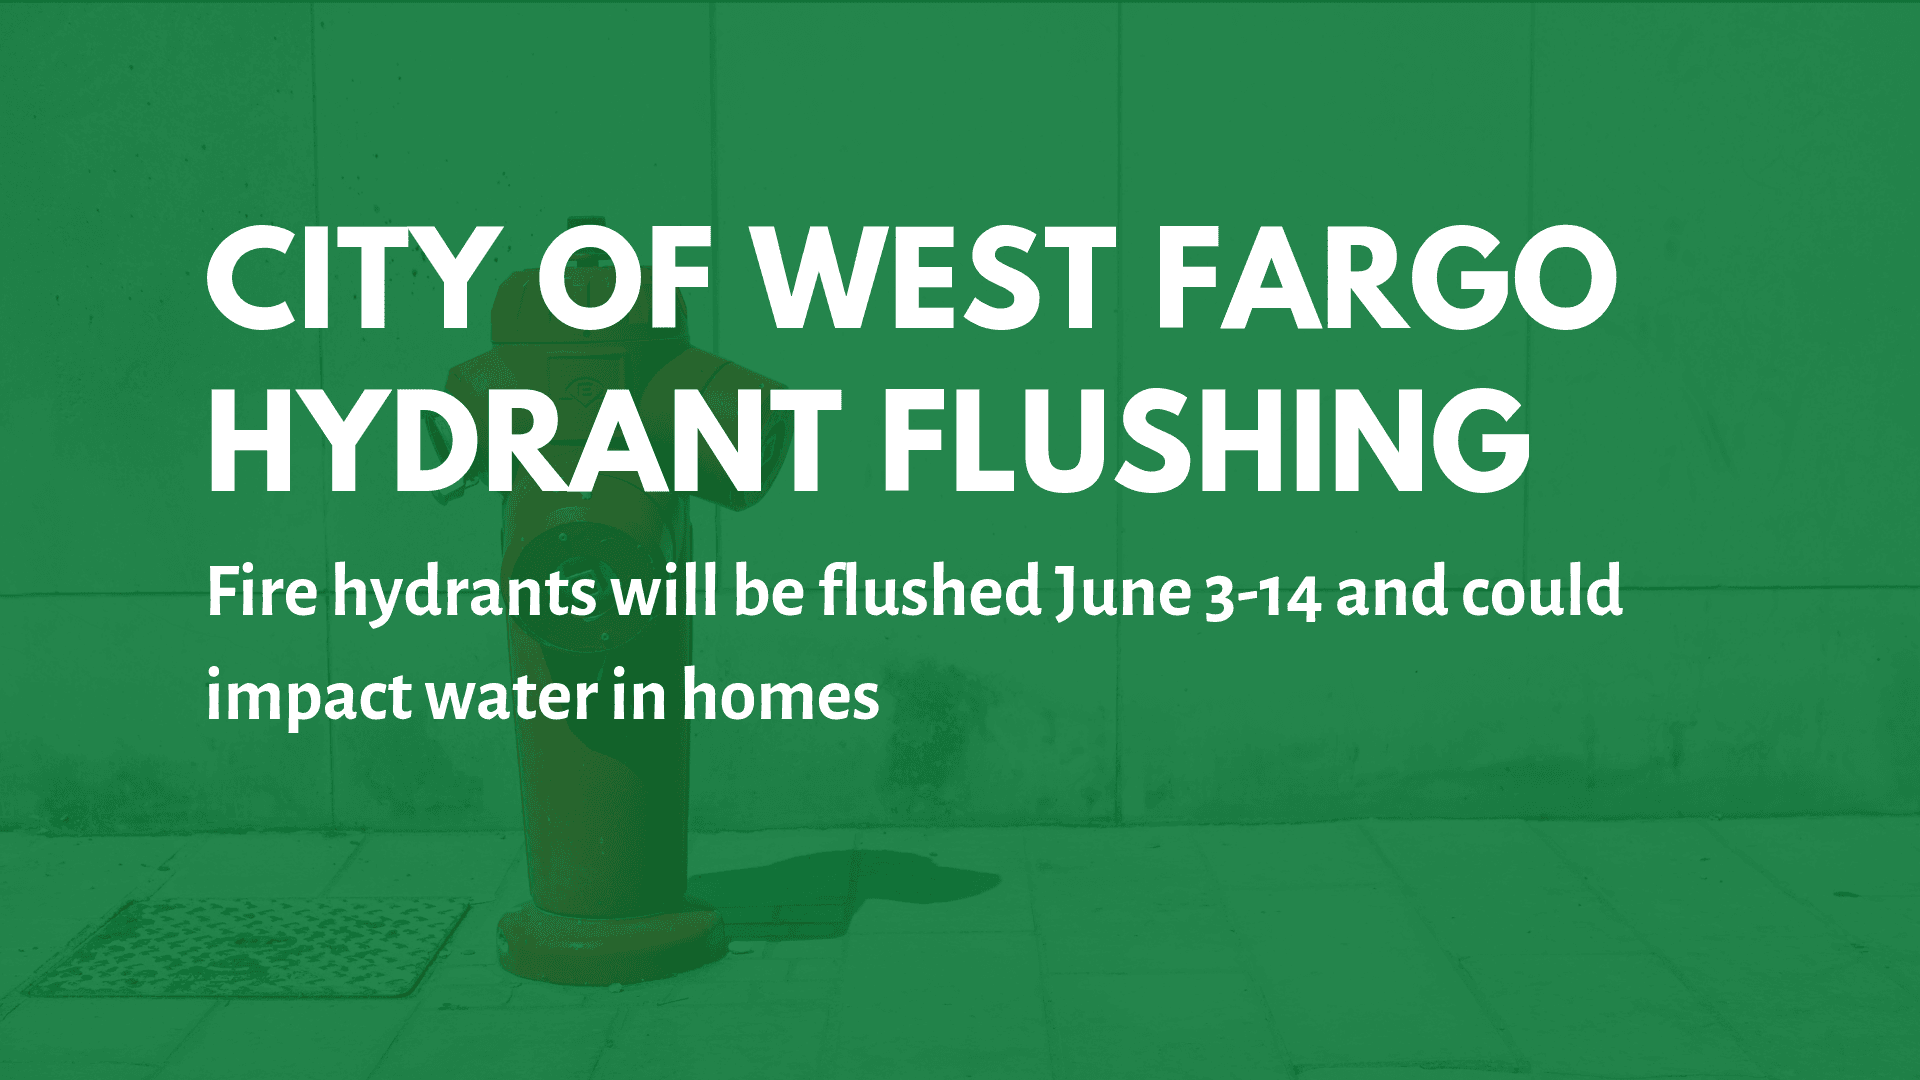 Spring fire hydrant flushing begins June 3